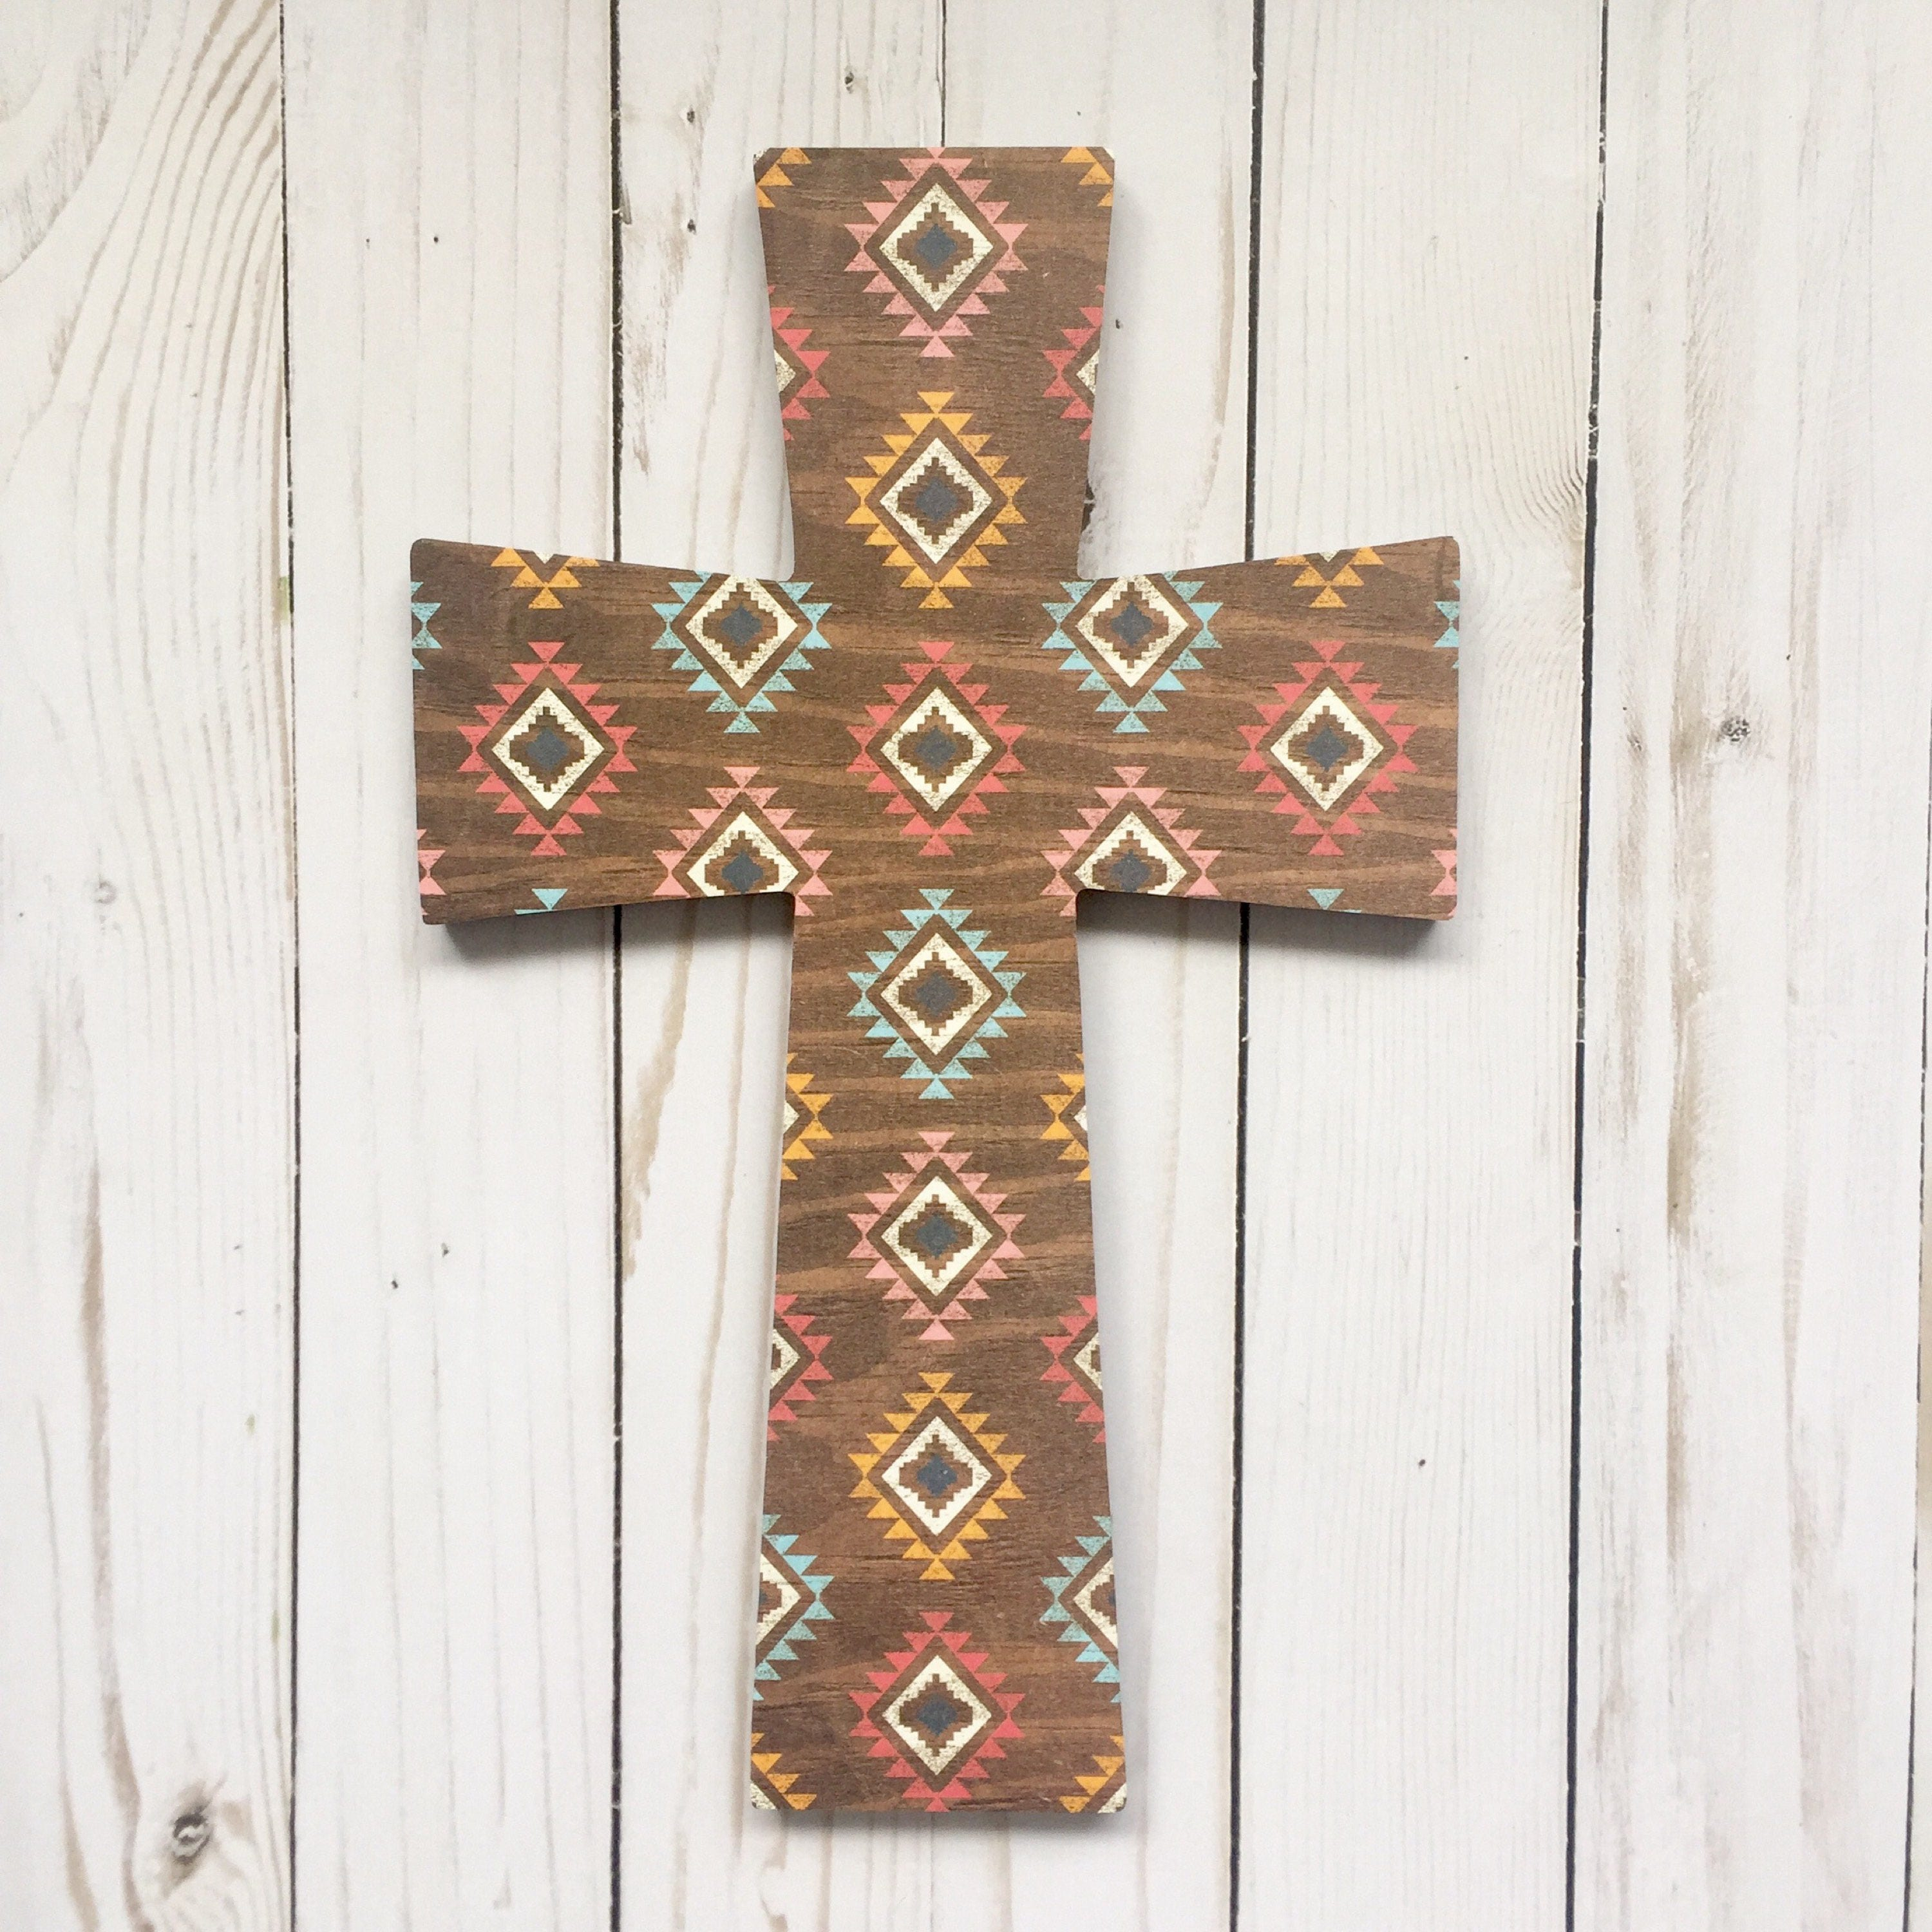 Decorative wooden crosses for wall gallery home wall decoration southwest decorative wall cross rustic wood crucifix zoom amipublicfo gallery amipublicfo Gallery